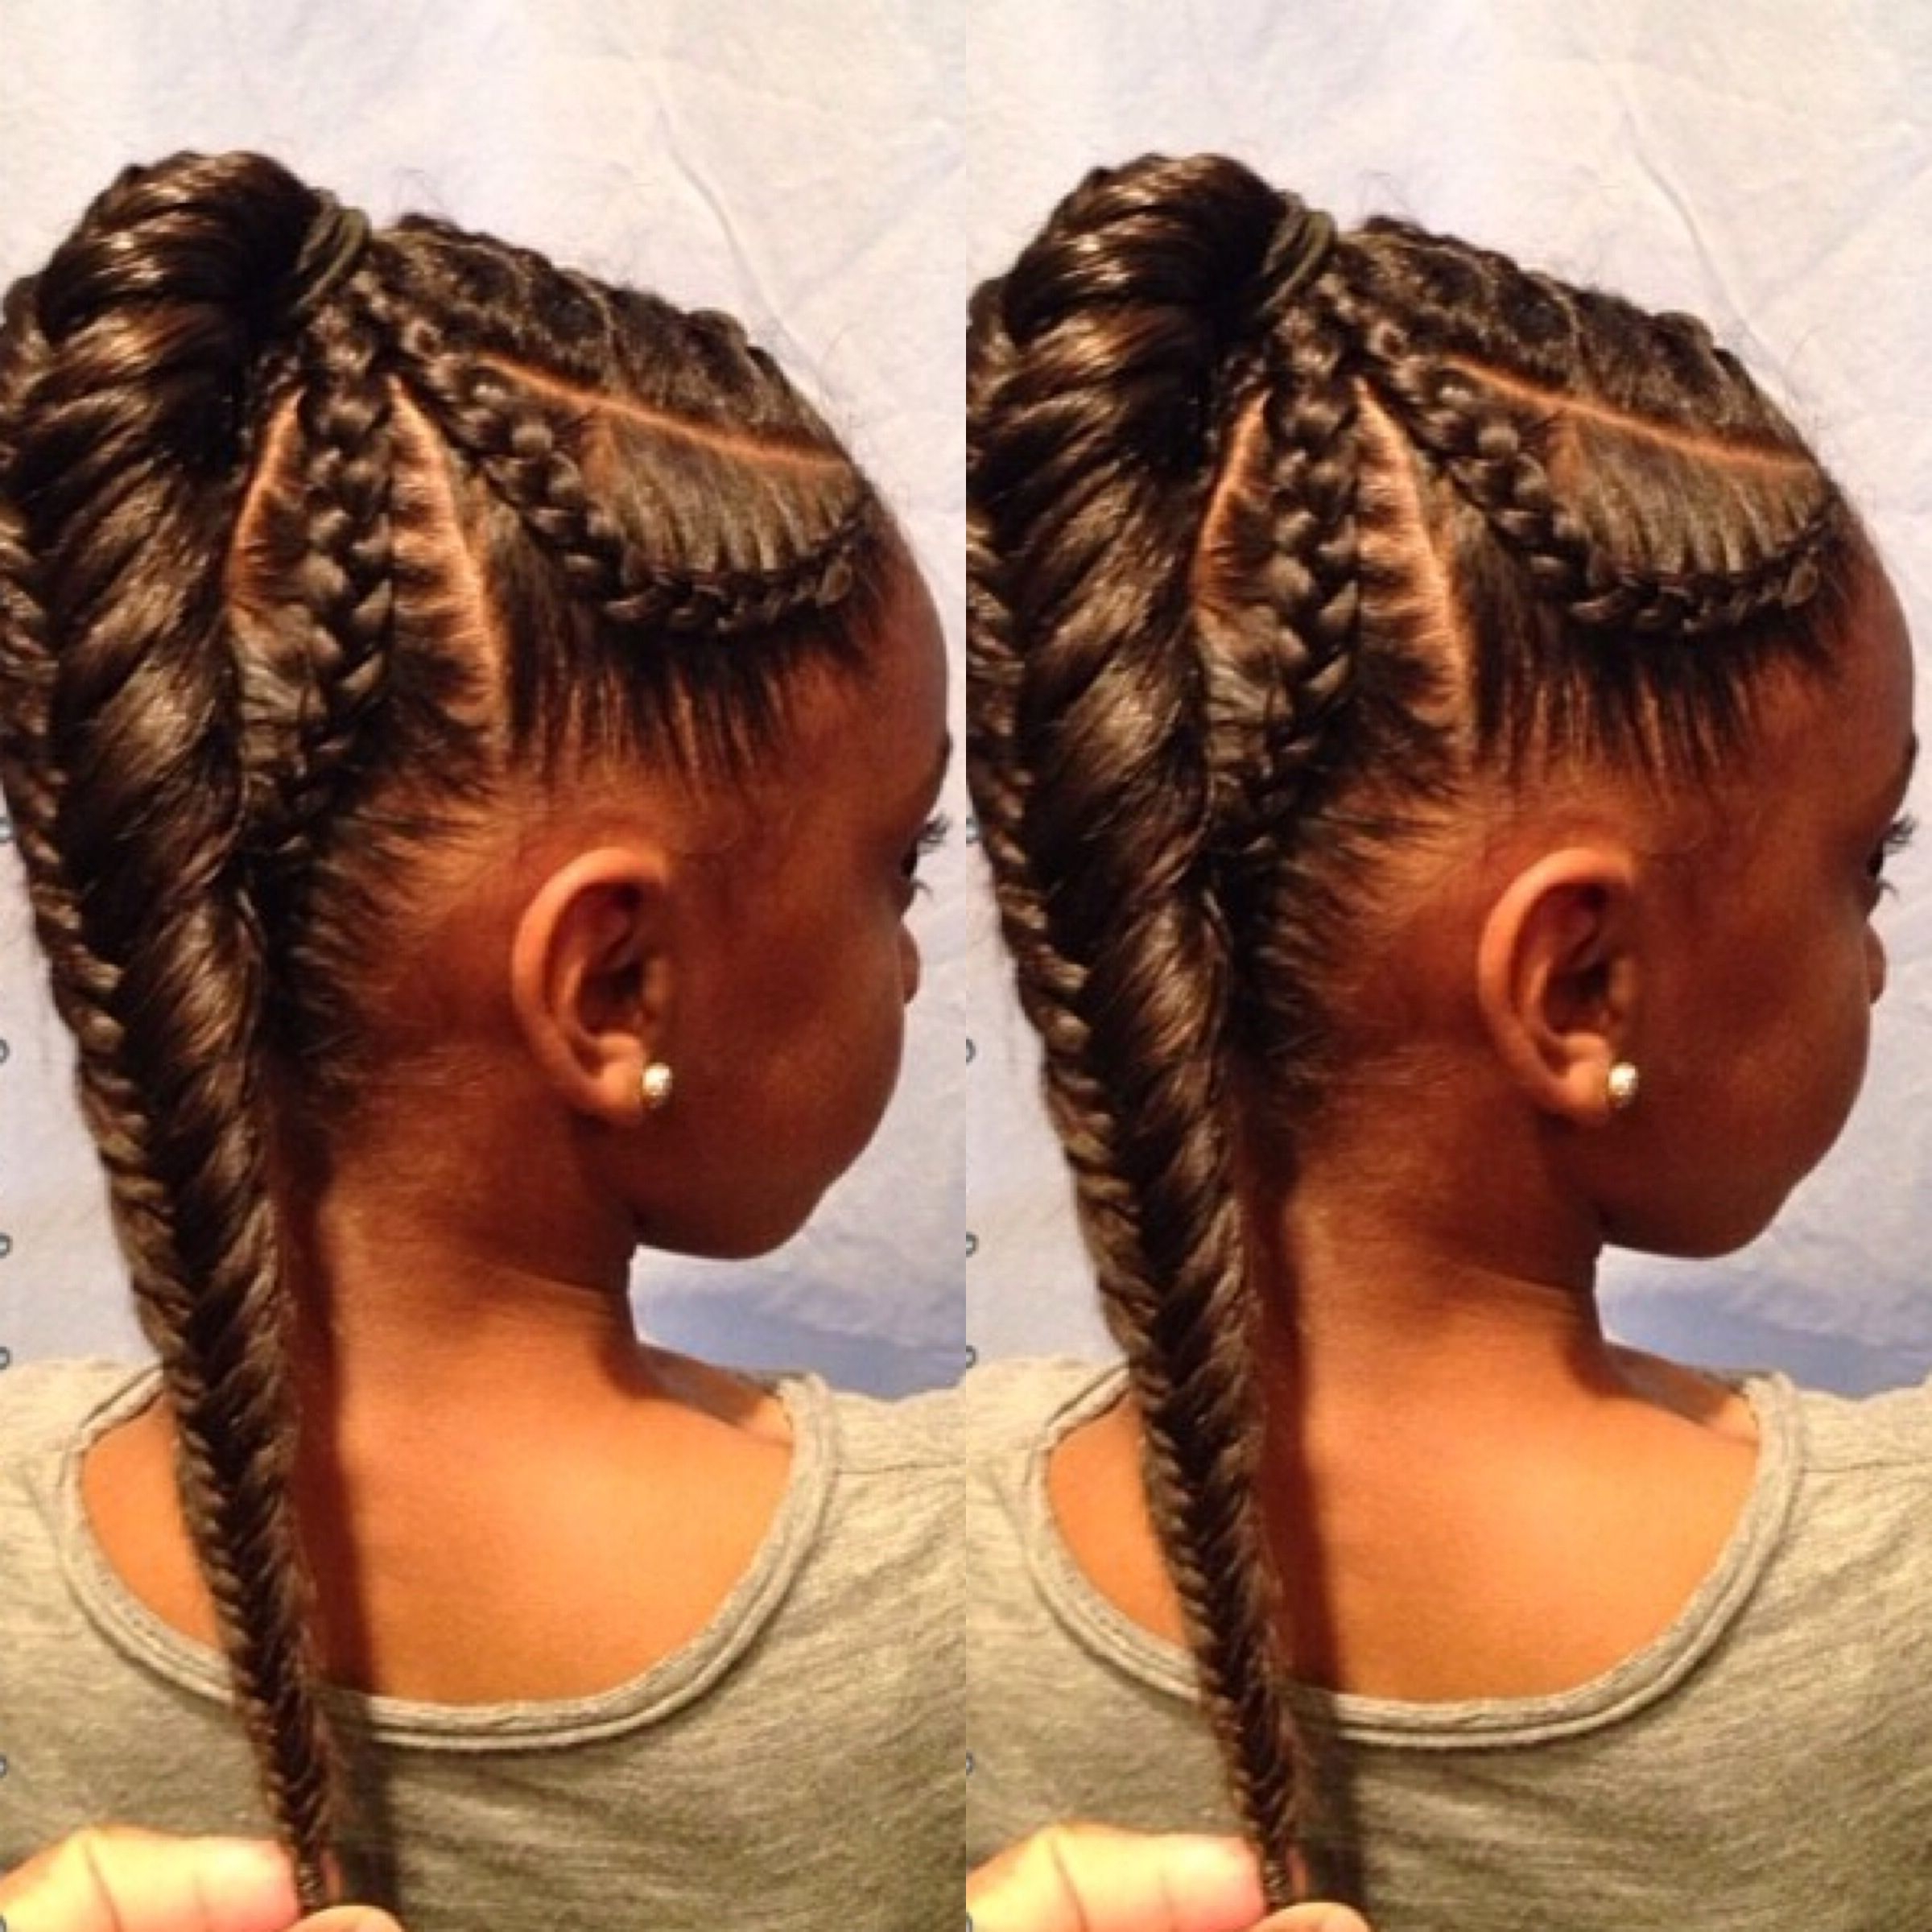 2020 Cornrow Fishtail Side Braided Hairstyles Intended For Pin On Natural Hair And Braids (View 5 of 20)